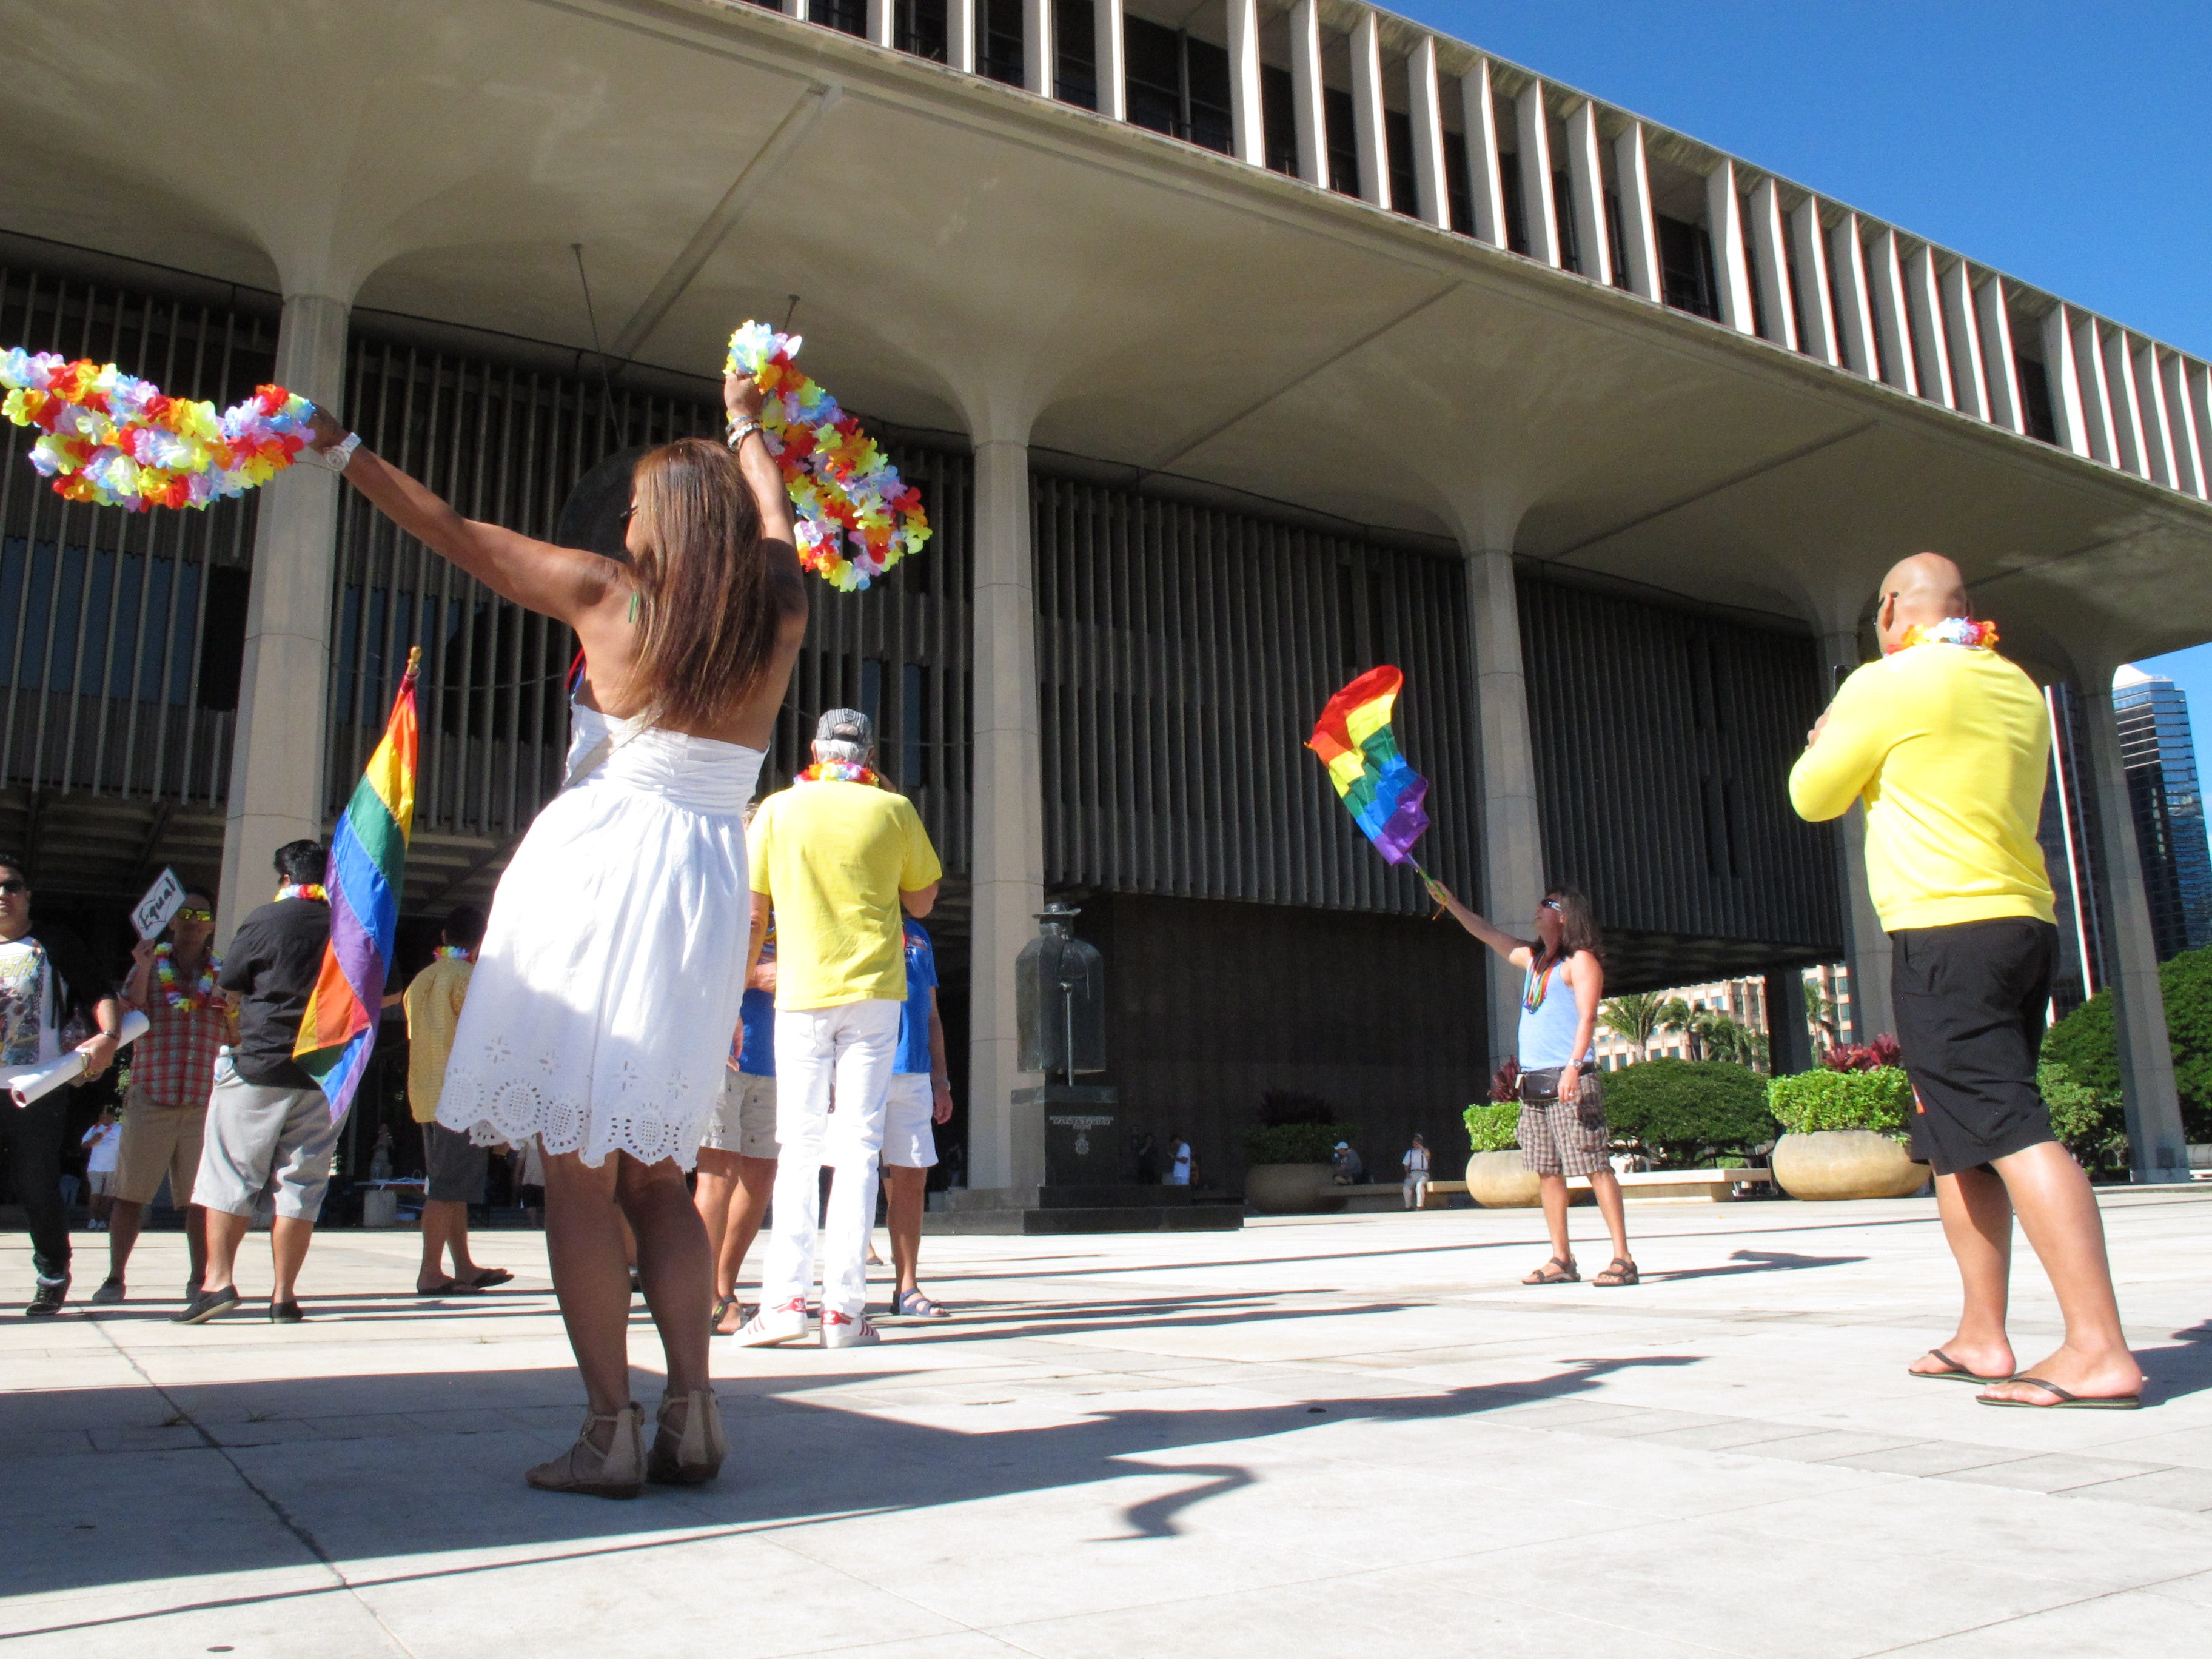 Hawaii's Civil Unions Bill Signed Into Law